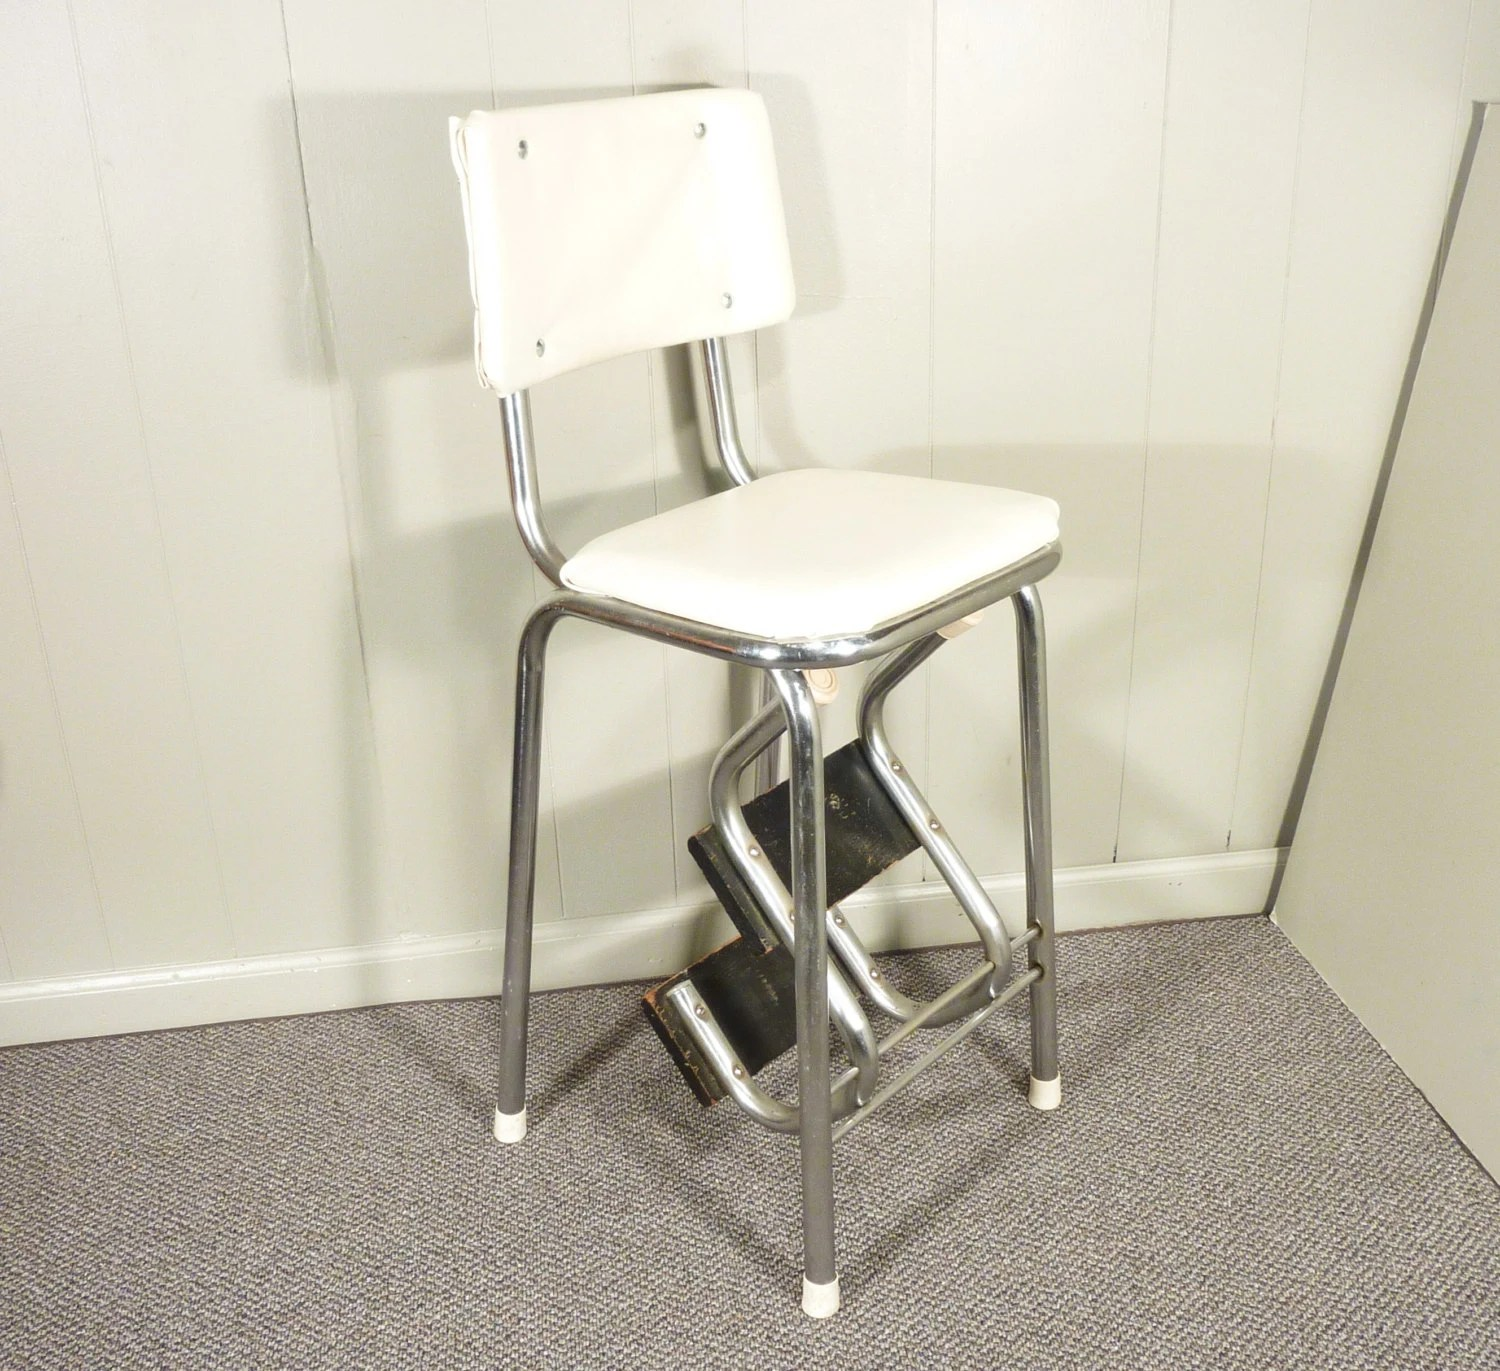 kitchen step stool with seat makeover contest retro 50s vintage chair by